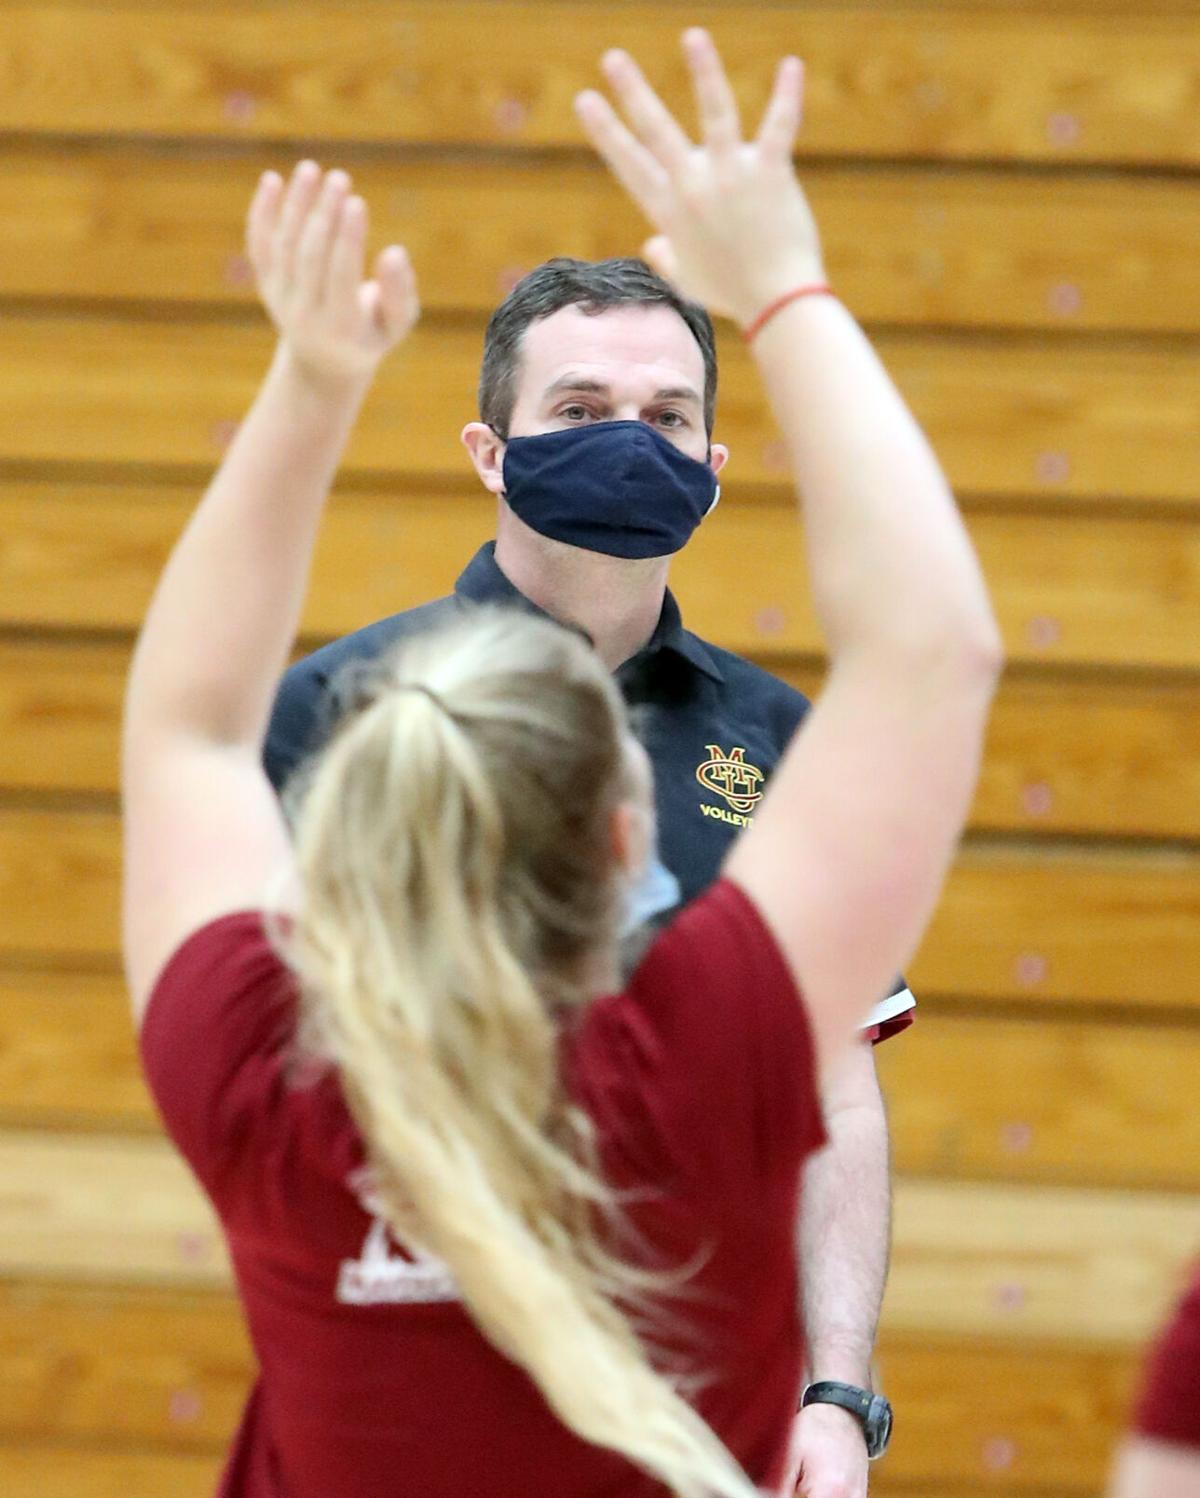 012121-CMU volleyball 1-CPT